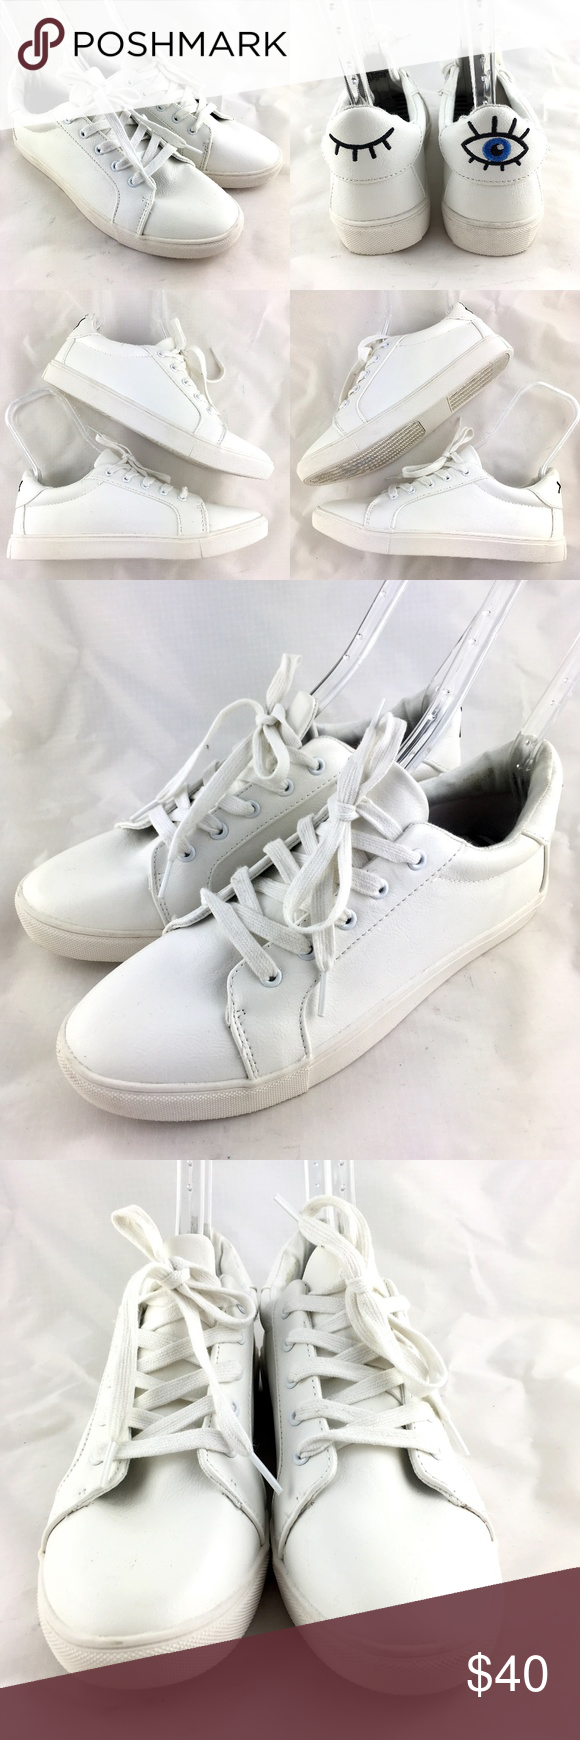 23103e733401d Boom sneakers shoes white 10 embroidered wink eye Betsey Johnson ...